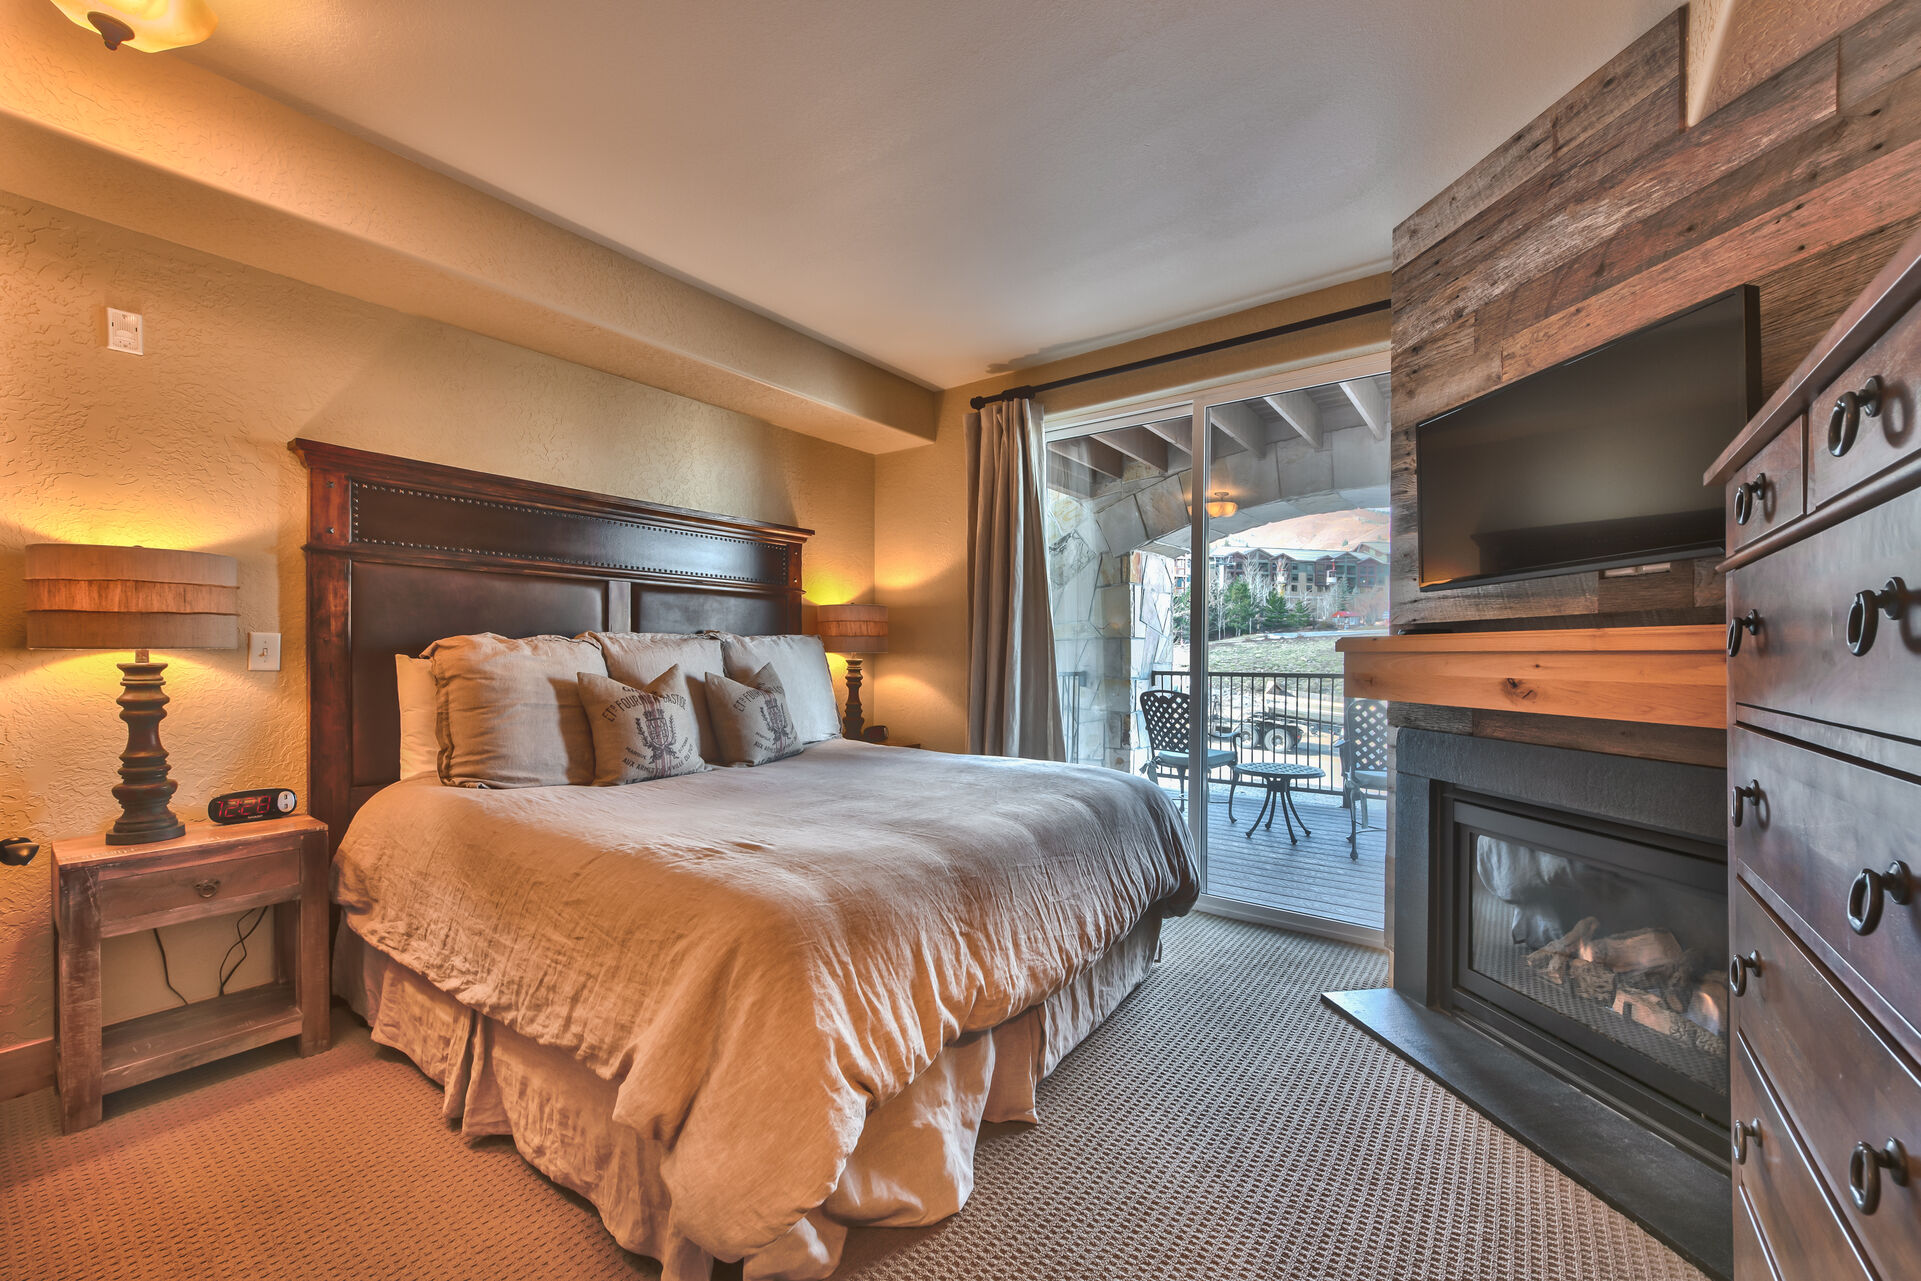 Grand Master bedroom with King Bed, Flat Screen TV, Gas Fireplace, Private Balcony, and Private Bath